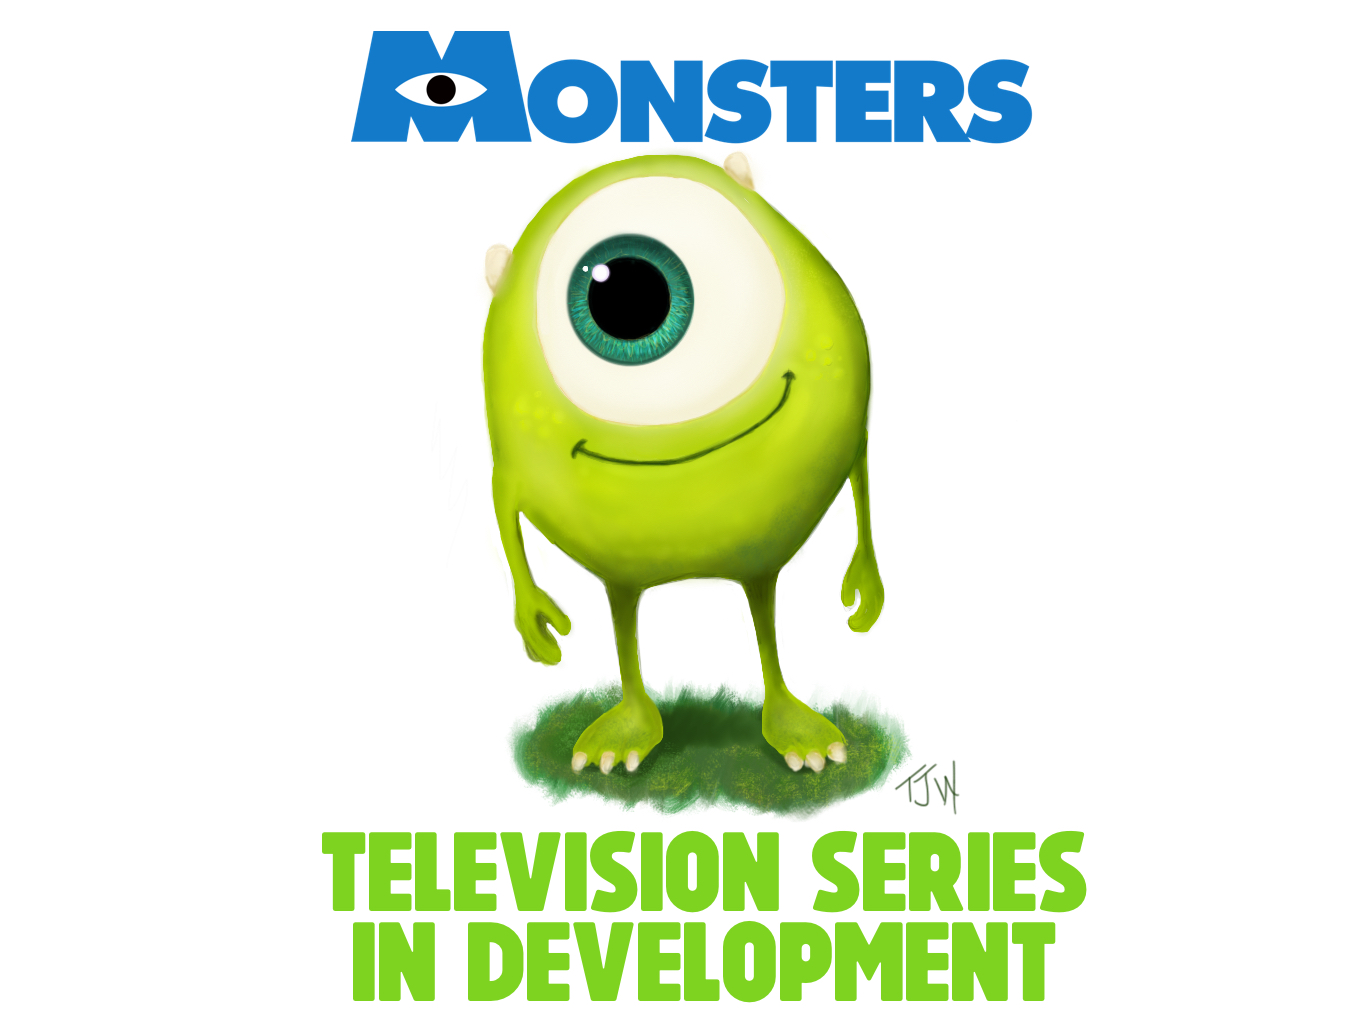 Get set for the commendable TV show from Monsters Inc. and laugh your heart out!